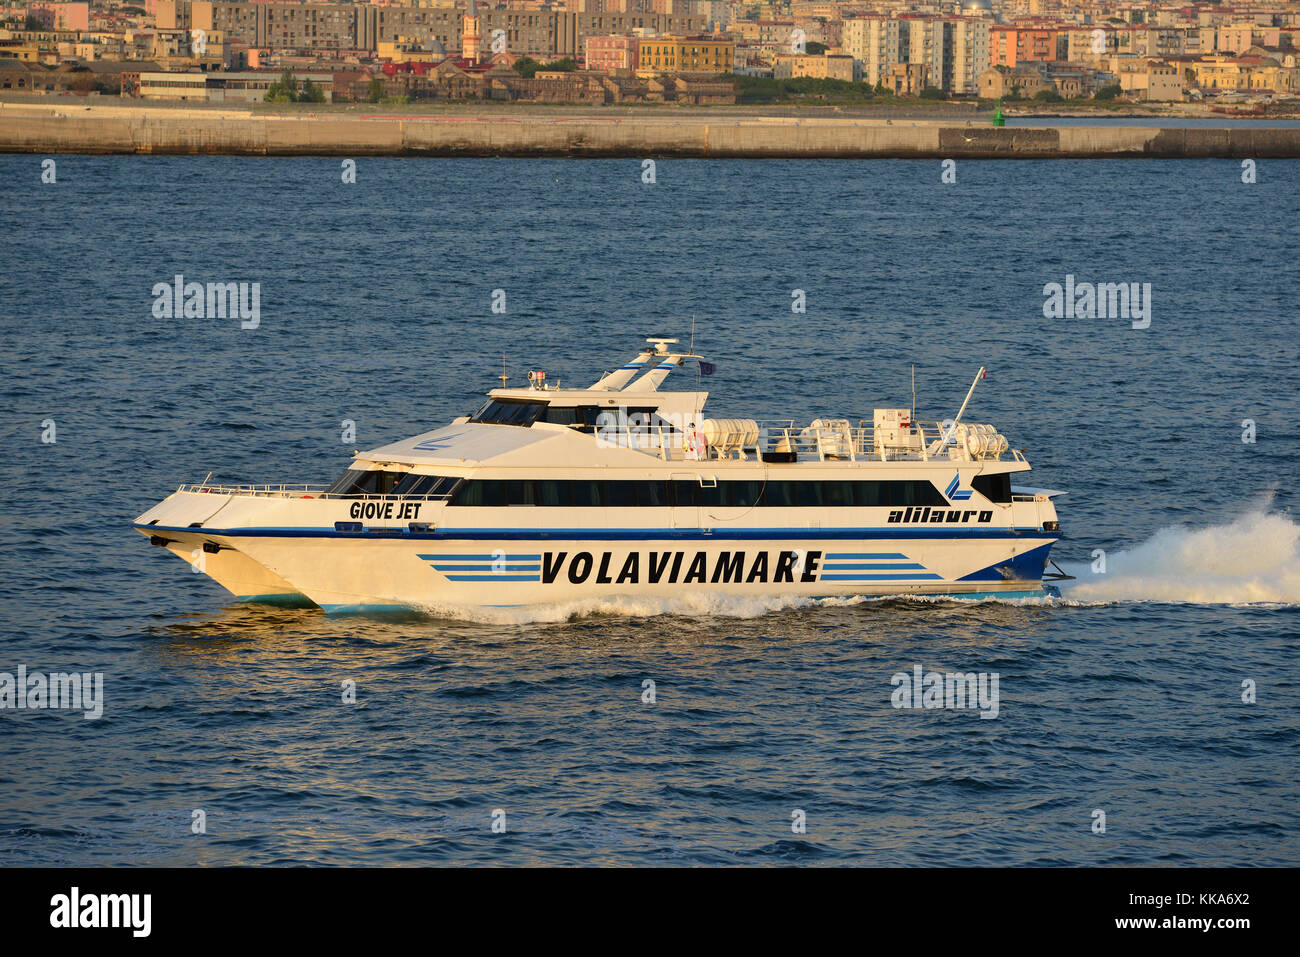 Giove Jet fast catamaran ferry arriving in Naples, Italy - Stock Image